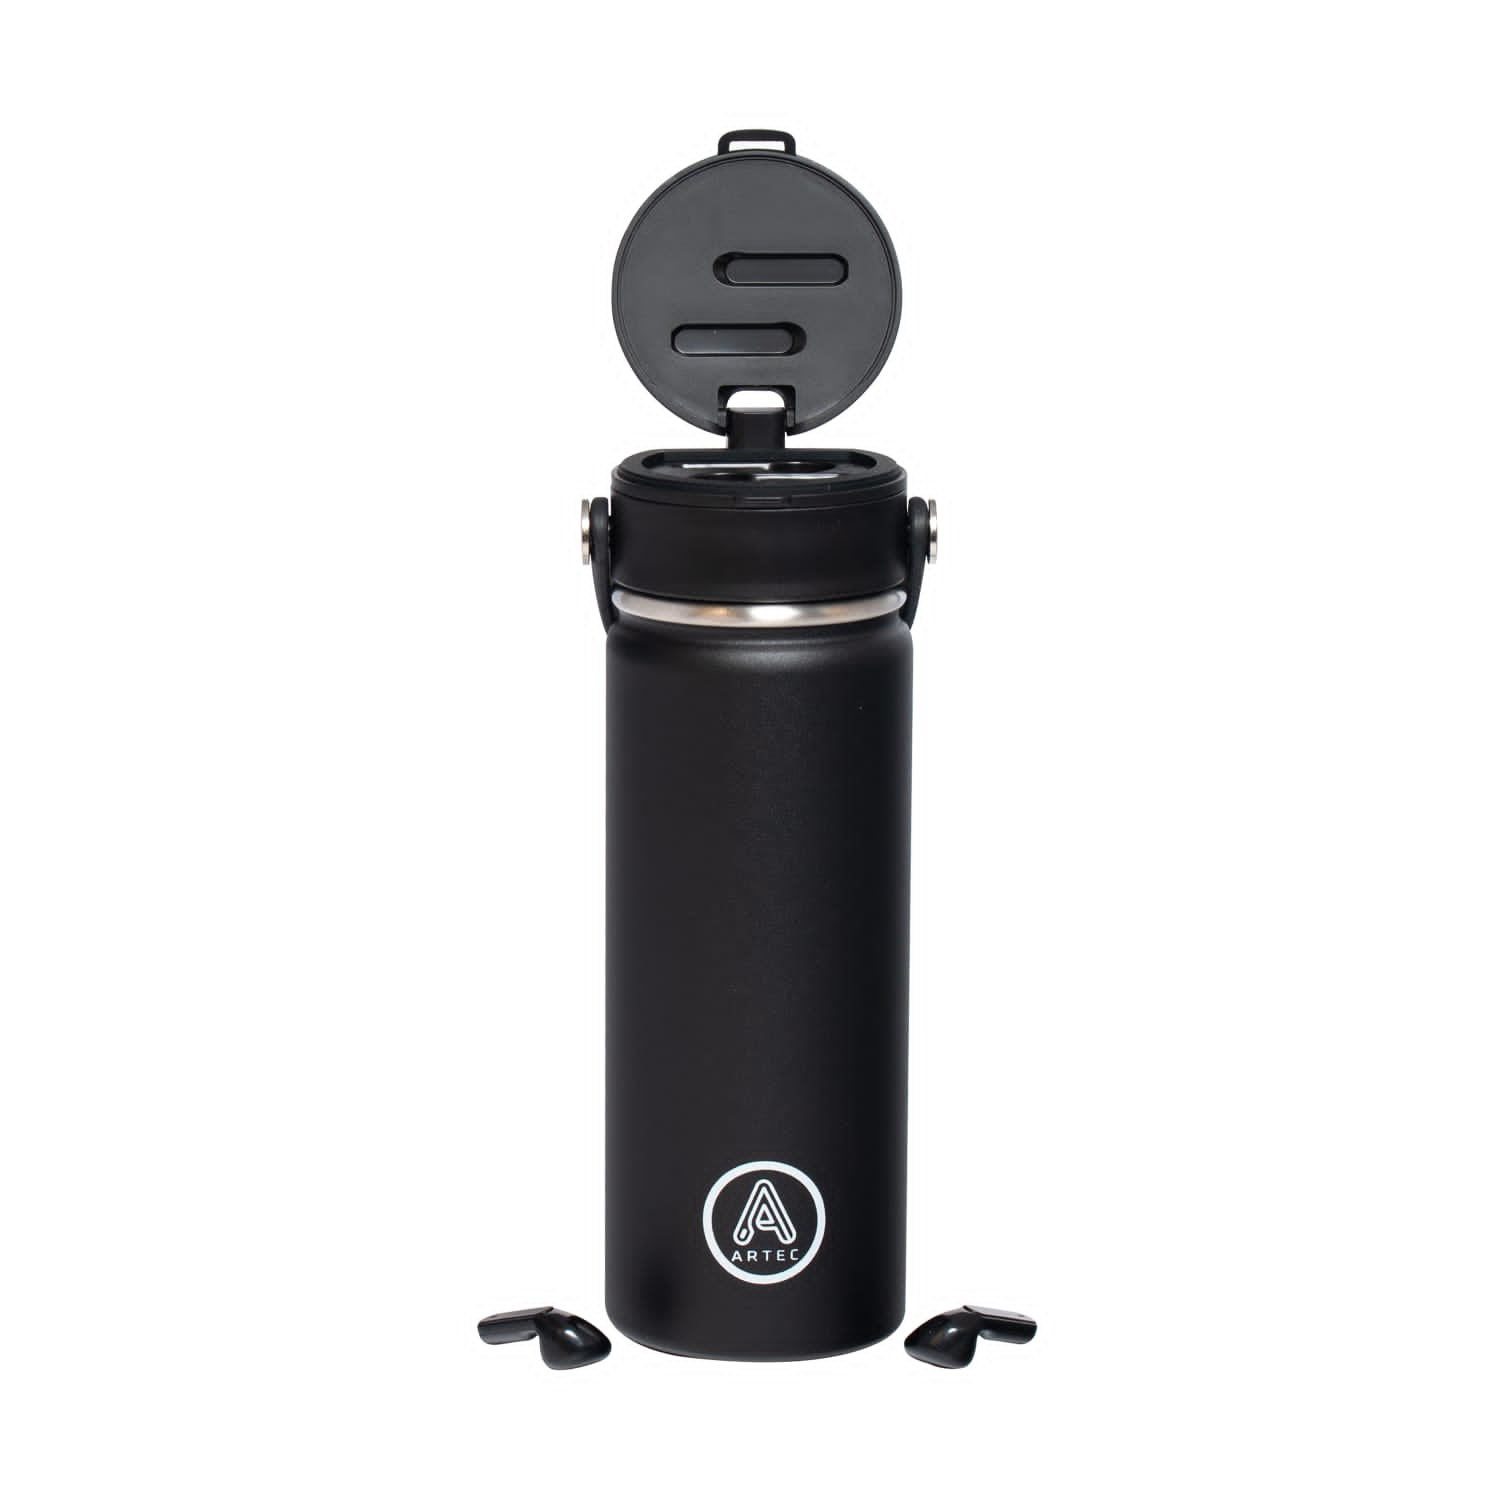 Thermos with TWS airpods integrated.